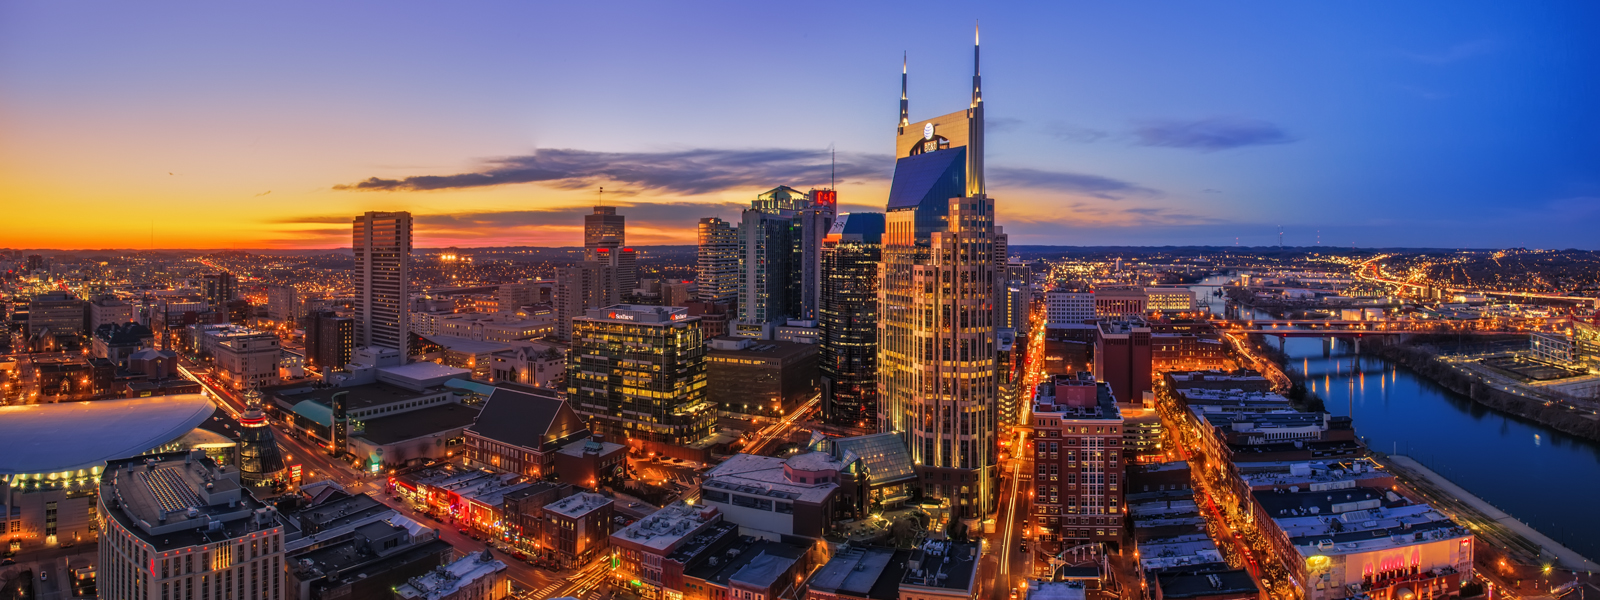 ... & Suites - Guest House inn and suites - Nashville, TN, United States